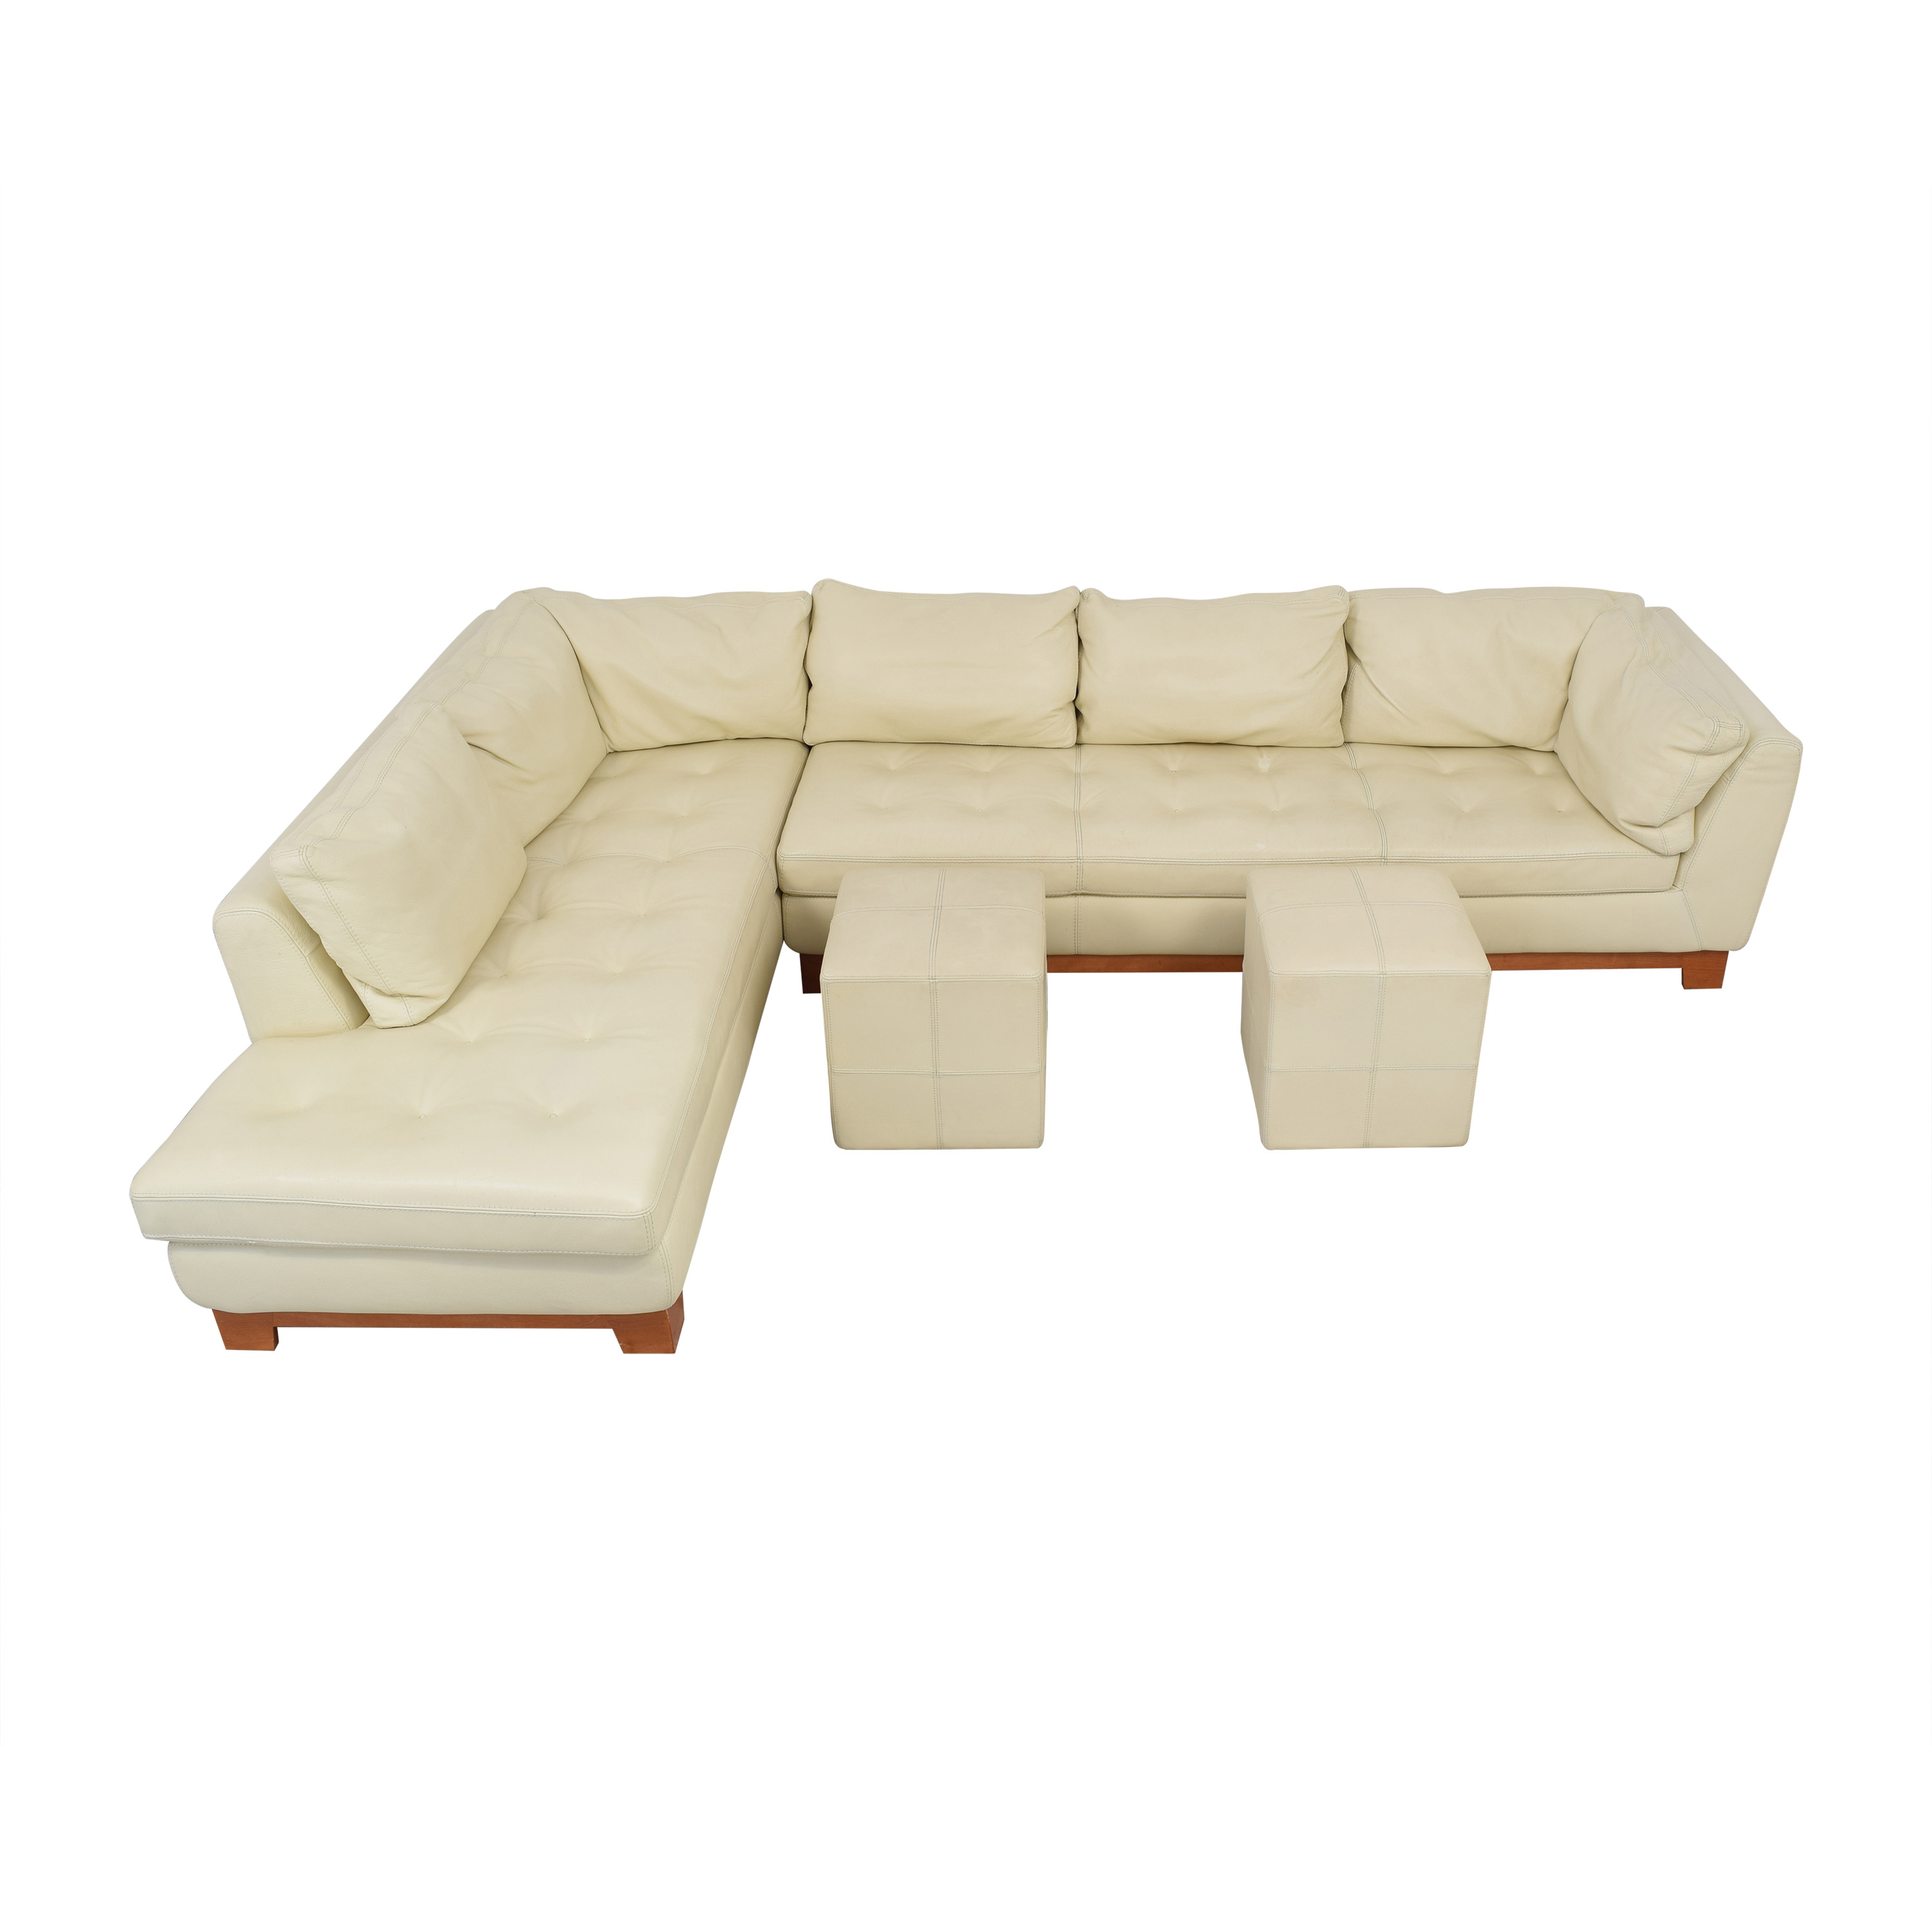 Roche Bobois Roche Bobois Chaise Sectional Sofa with Ottomans for sale